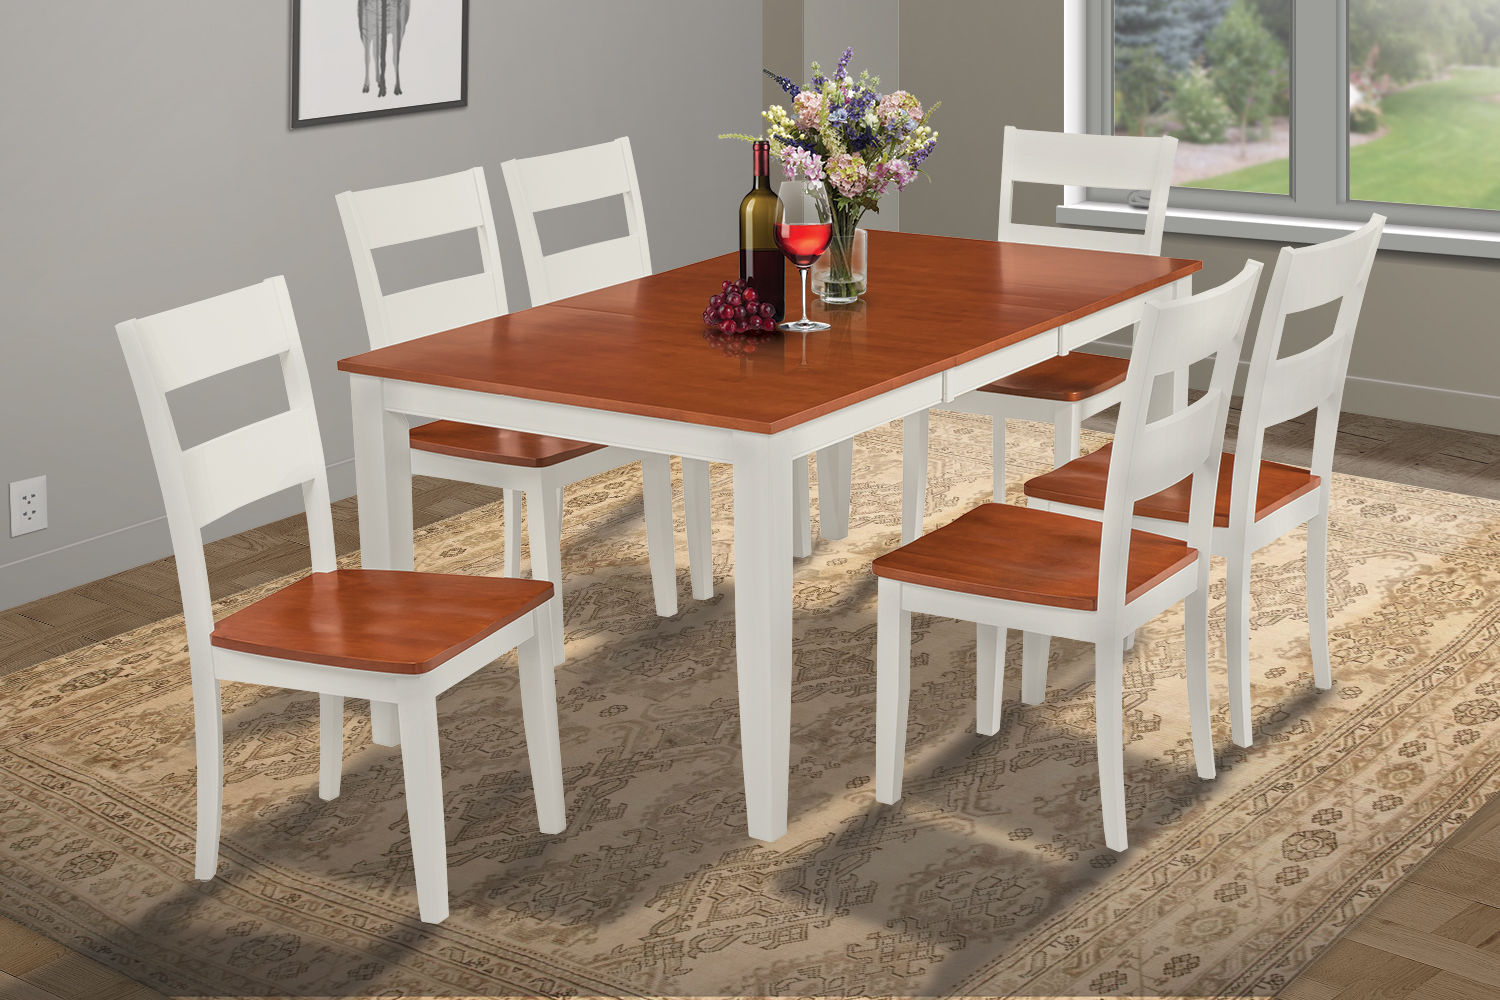 SUNDERLAND DINING ROOM TABLE SET WITH WOOD SEAT CHAIR IN WHITE & CHERRY